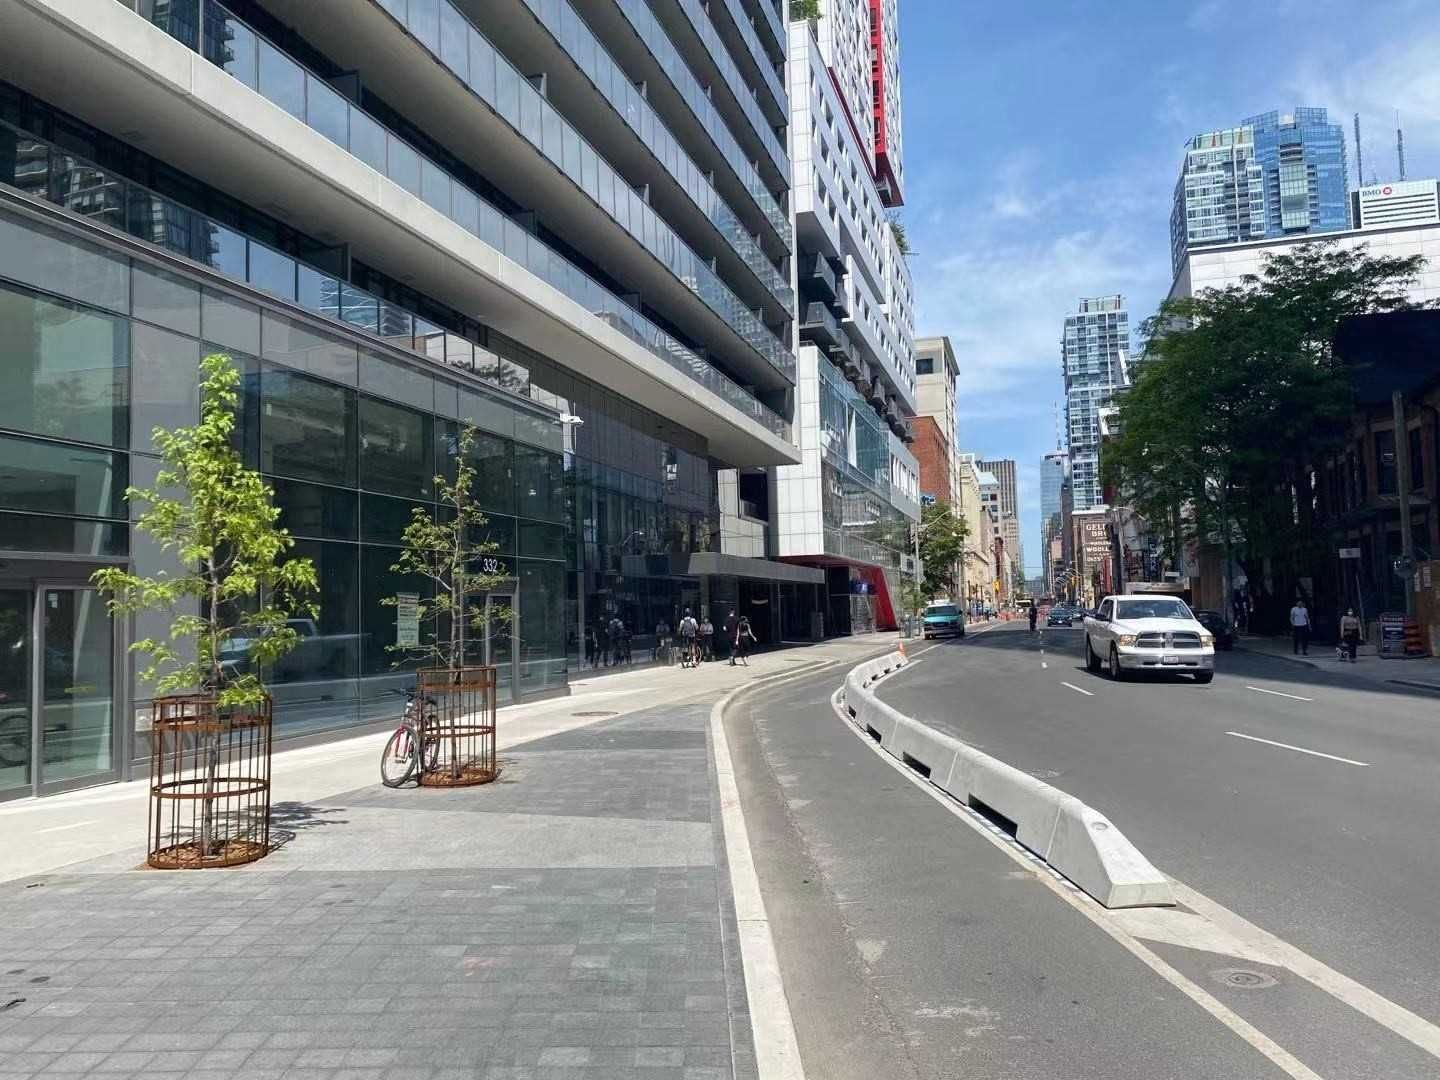 330 Richmond St W, unit 816 for rent in Toronto - image #1